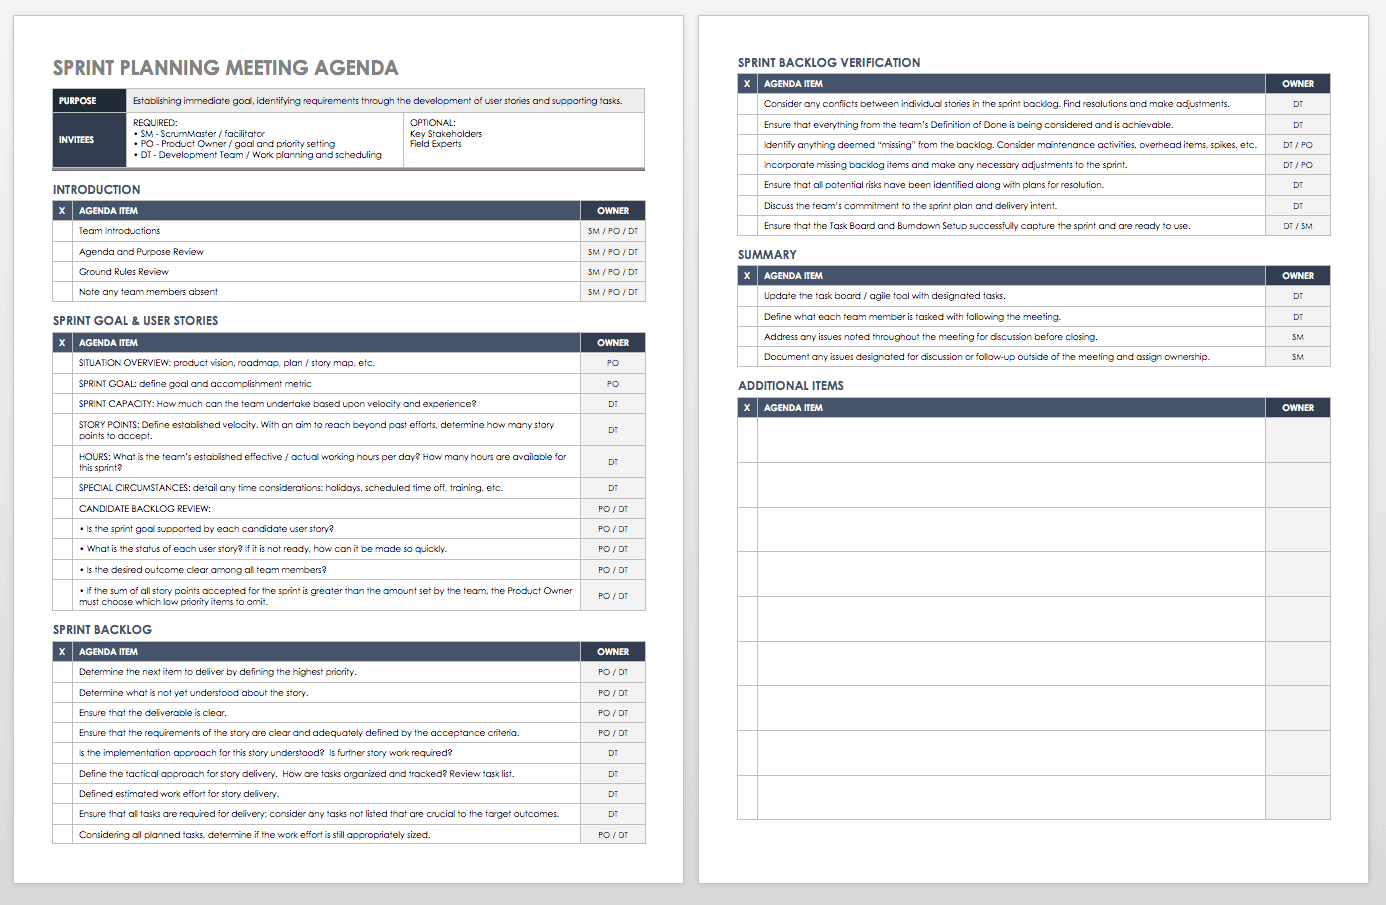 Sprint Planning Meeting Agenda Template